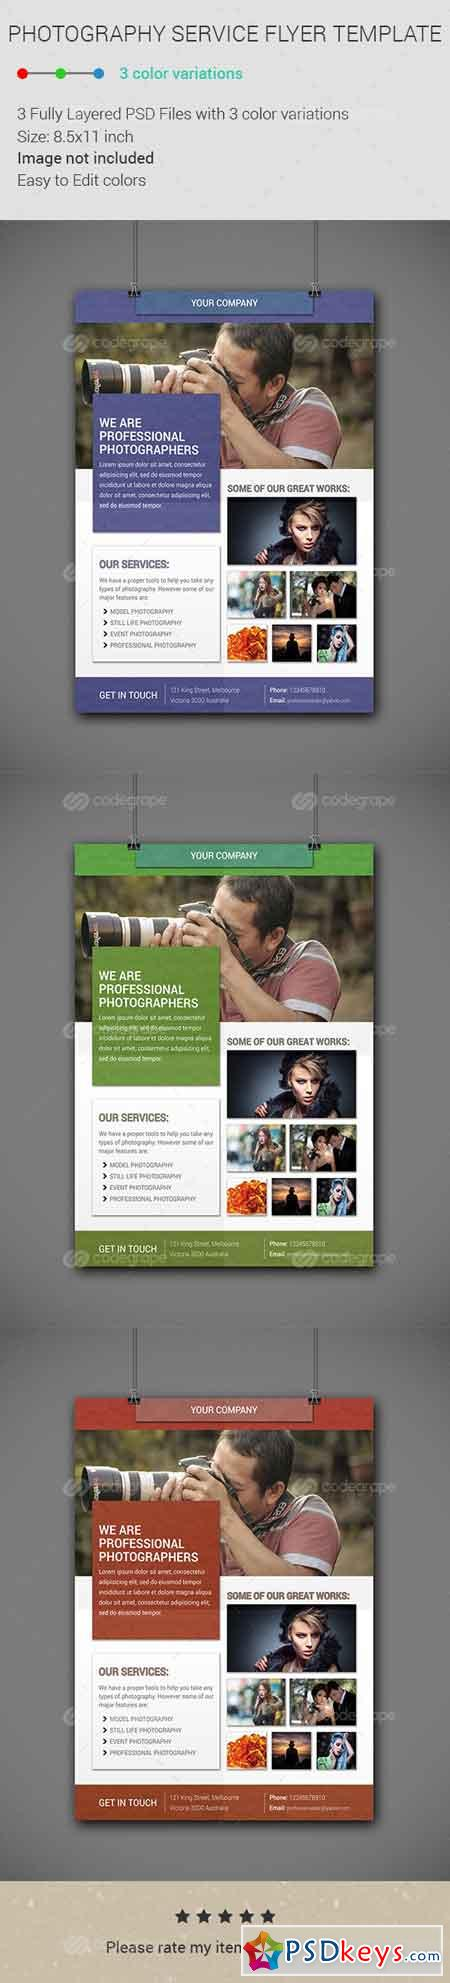 photography service flyer template photoshop photography service flyer template 6324